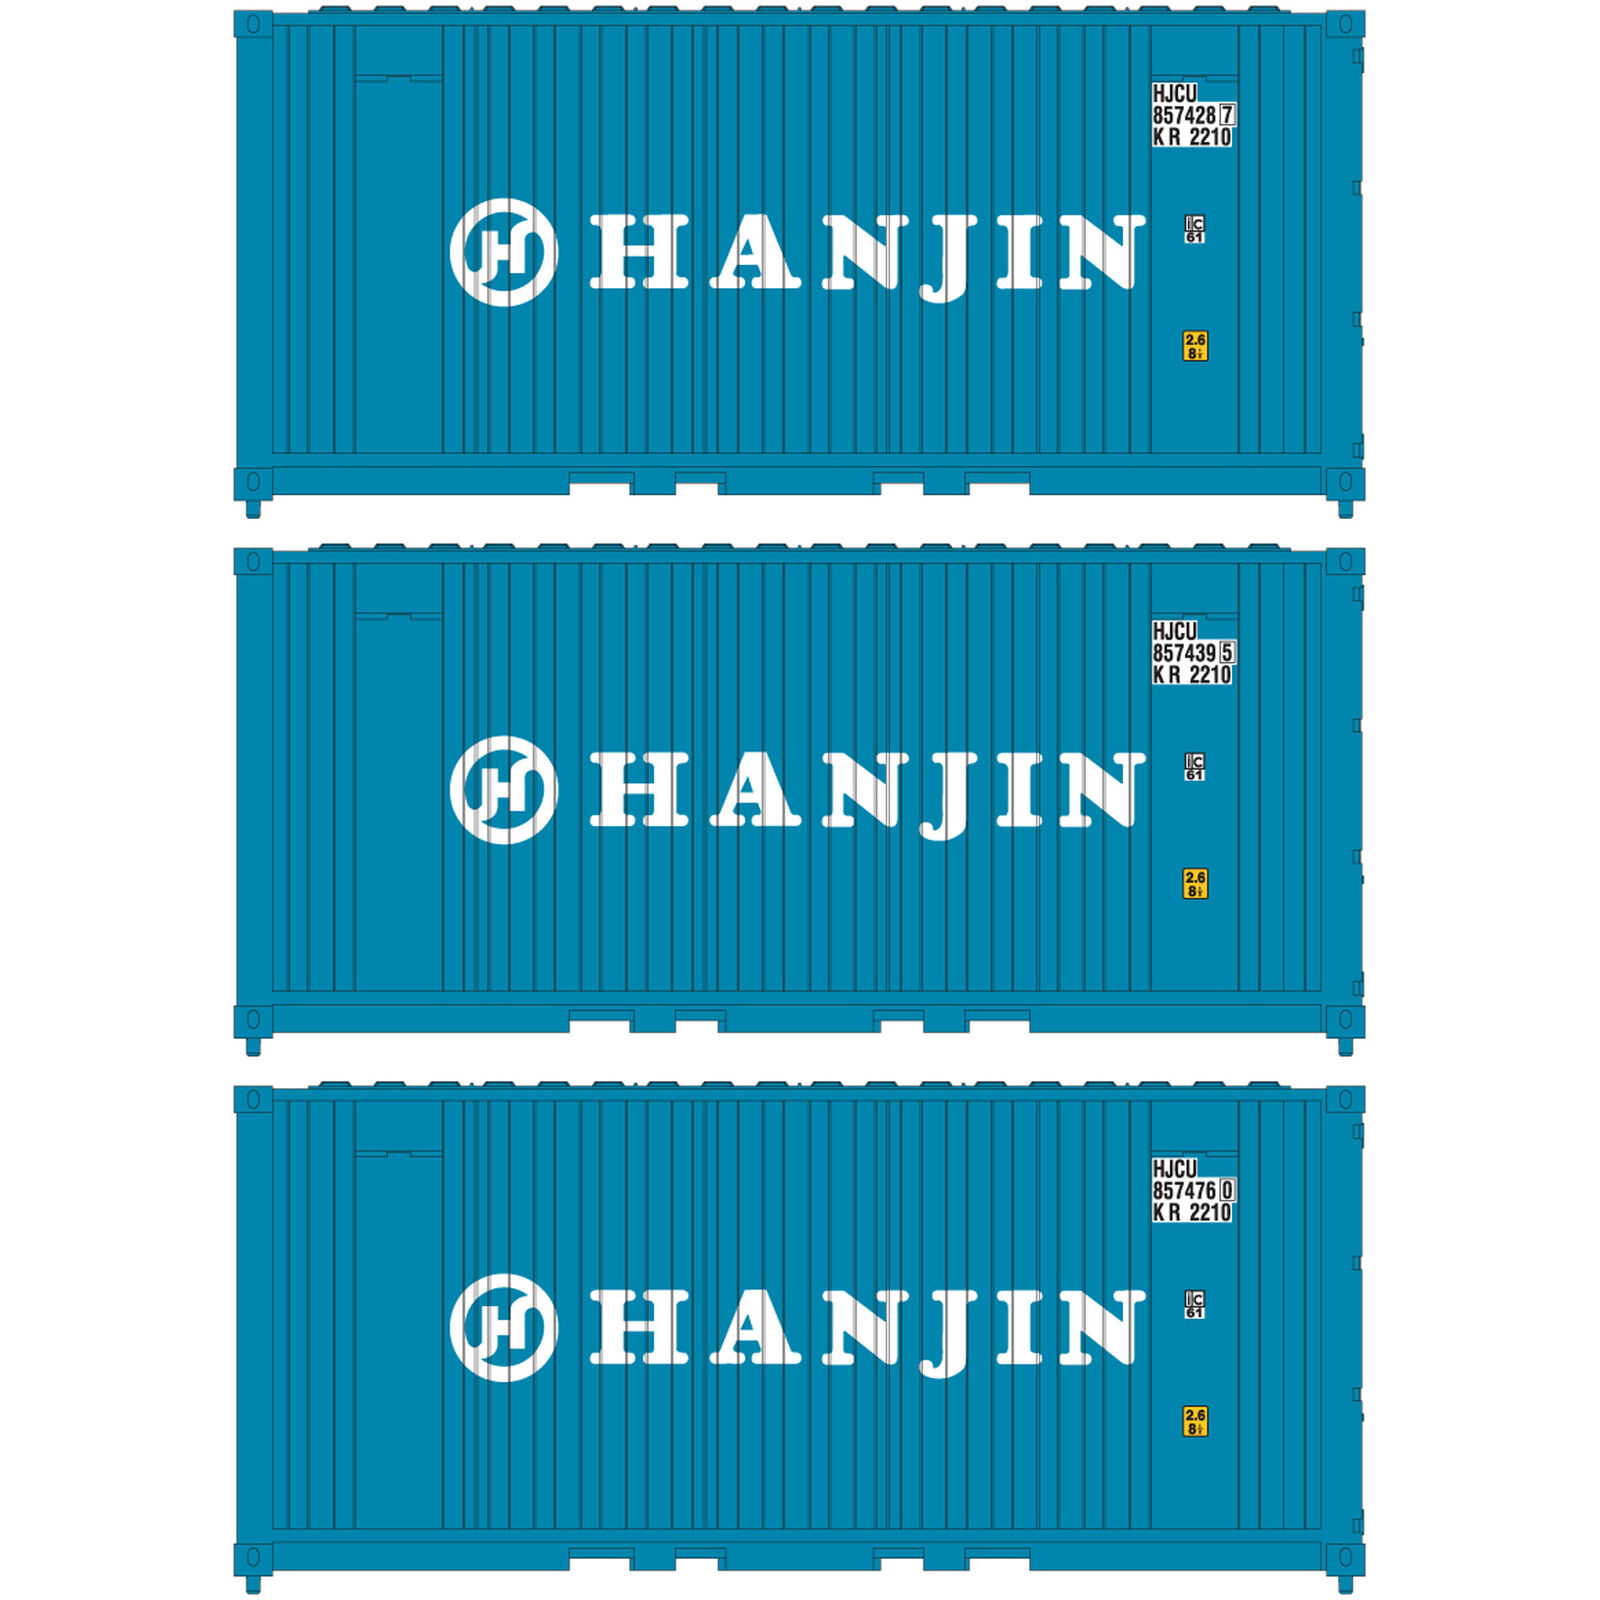 N 20' Corrugated Container Hanjin (3)